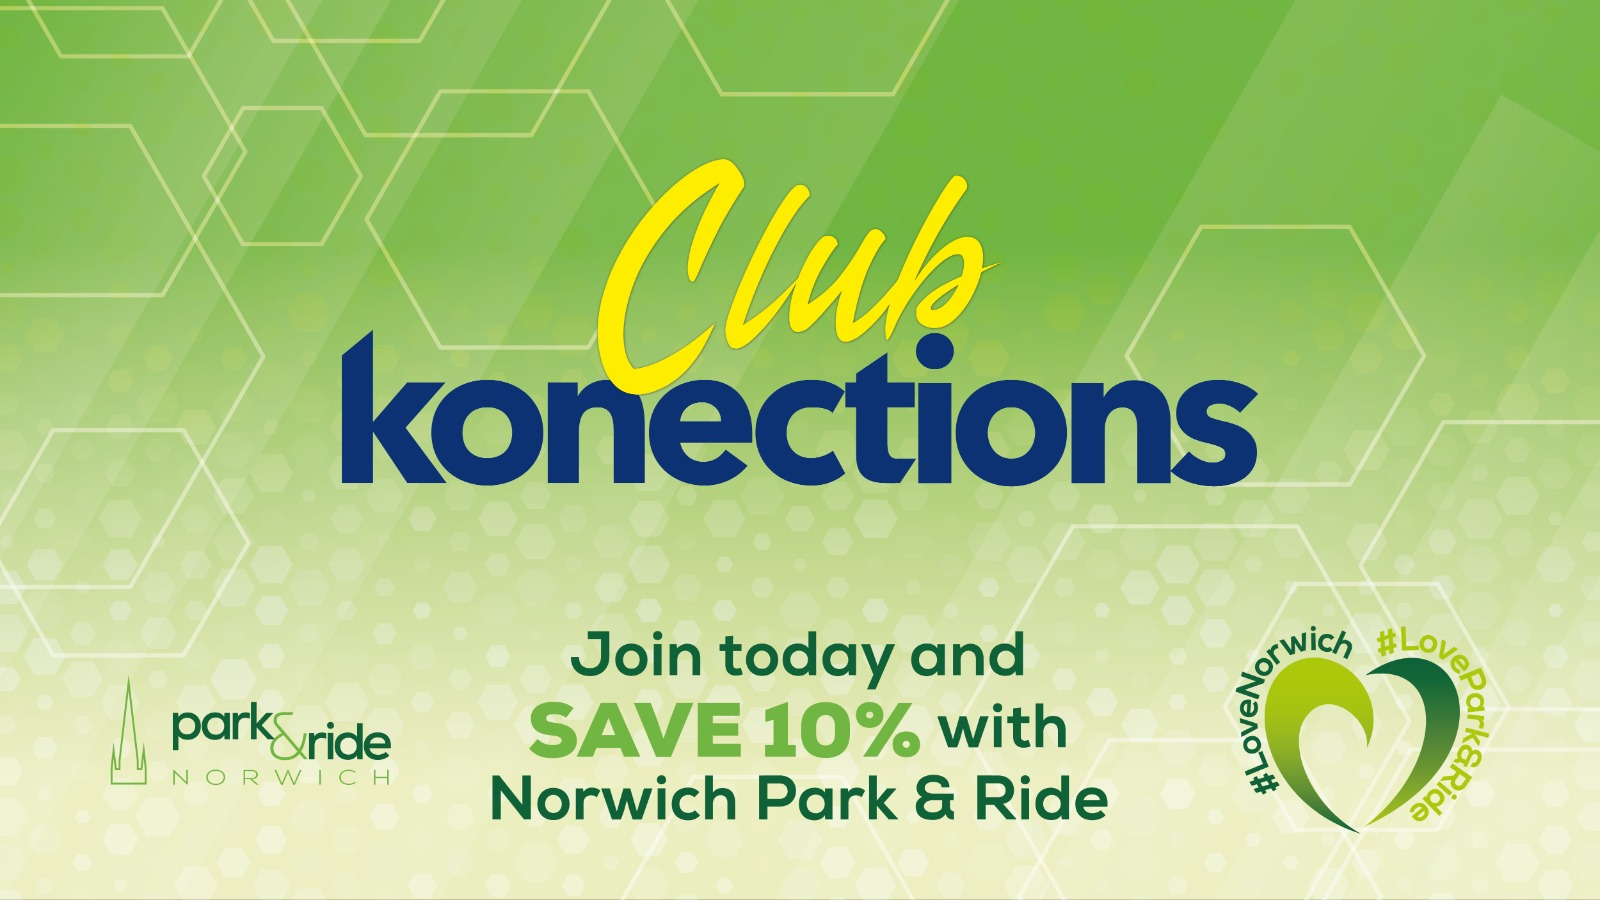 Image of Club Konections